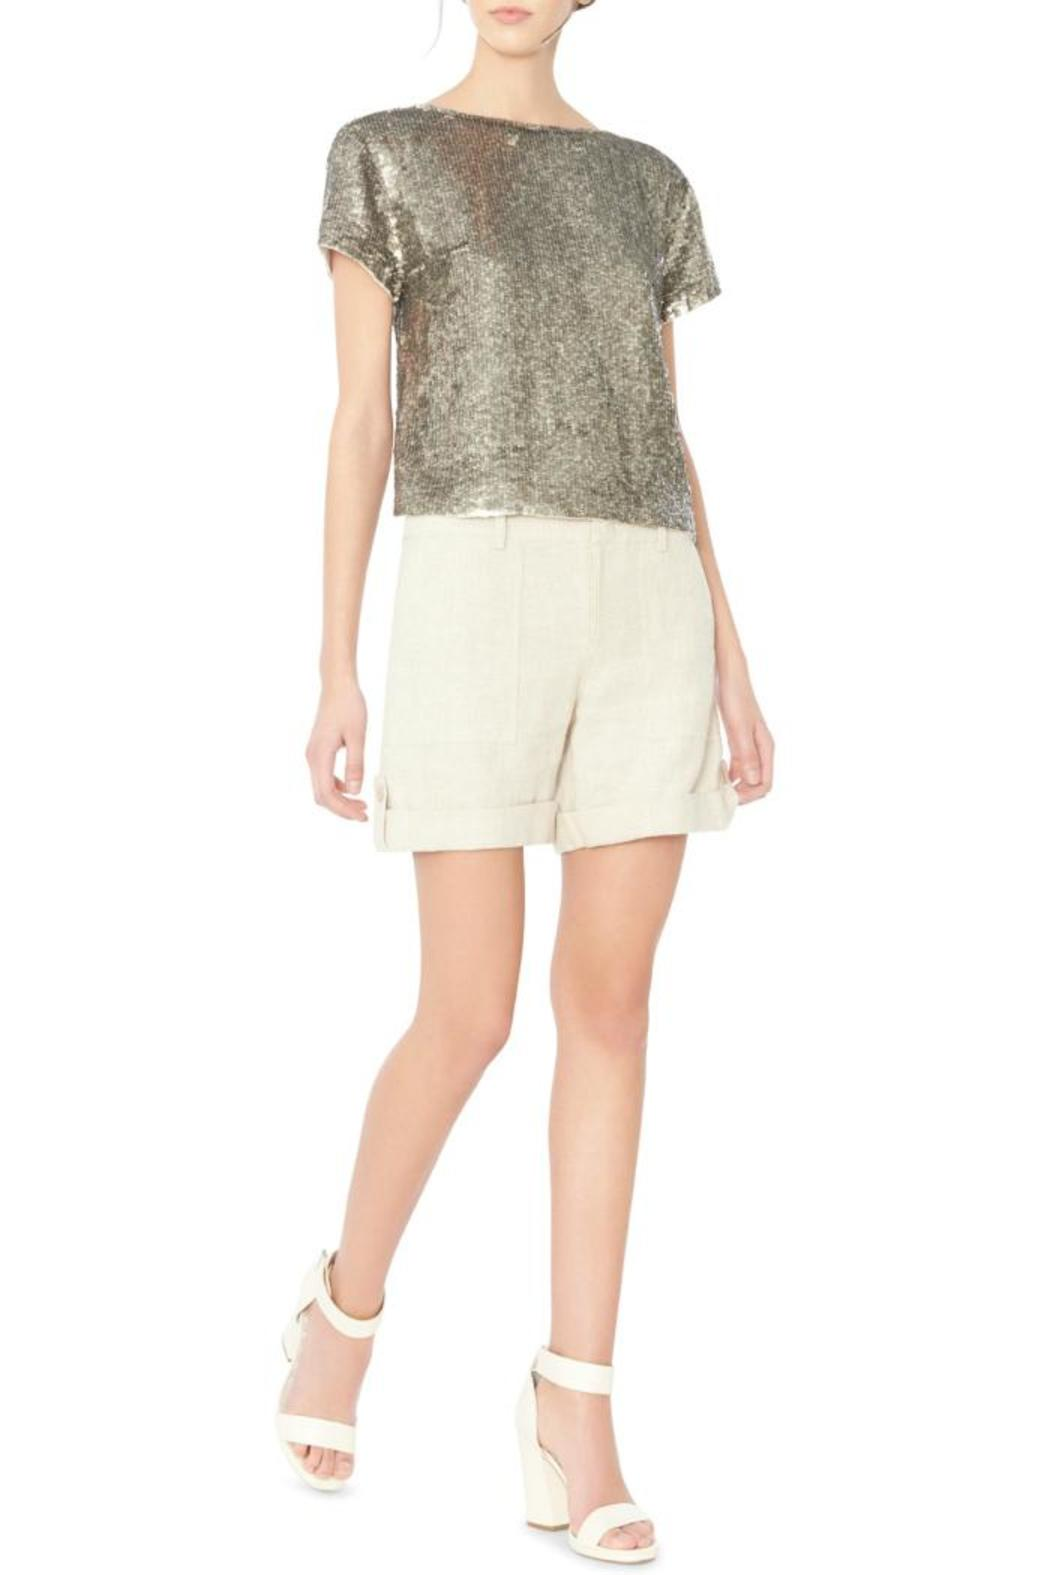 Alice + Olivia Sarita Sequin Top - Main Image